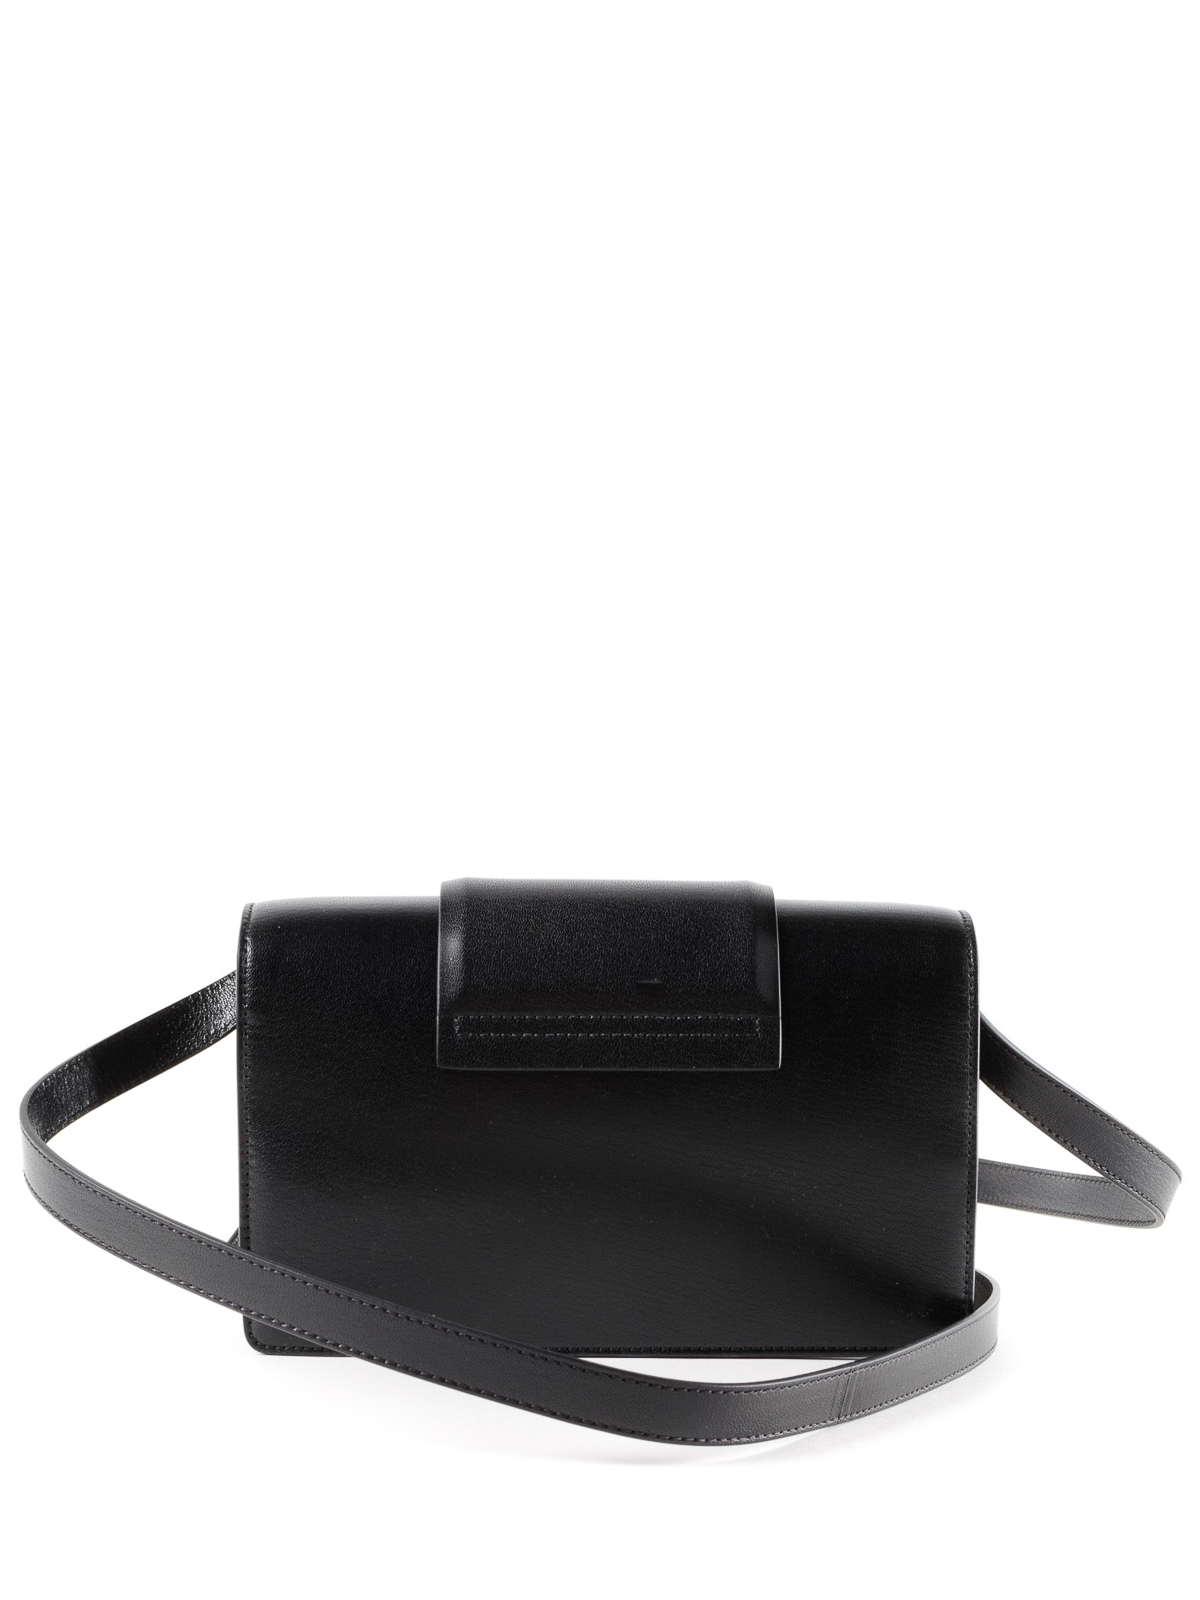 45691841efdf iKRIX GIVENCHY  cross body bags - Infinity chain detailed compact bag